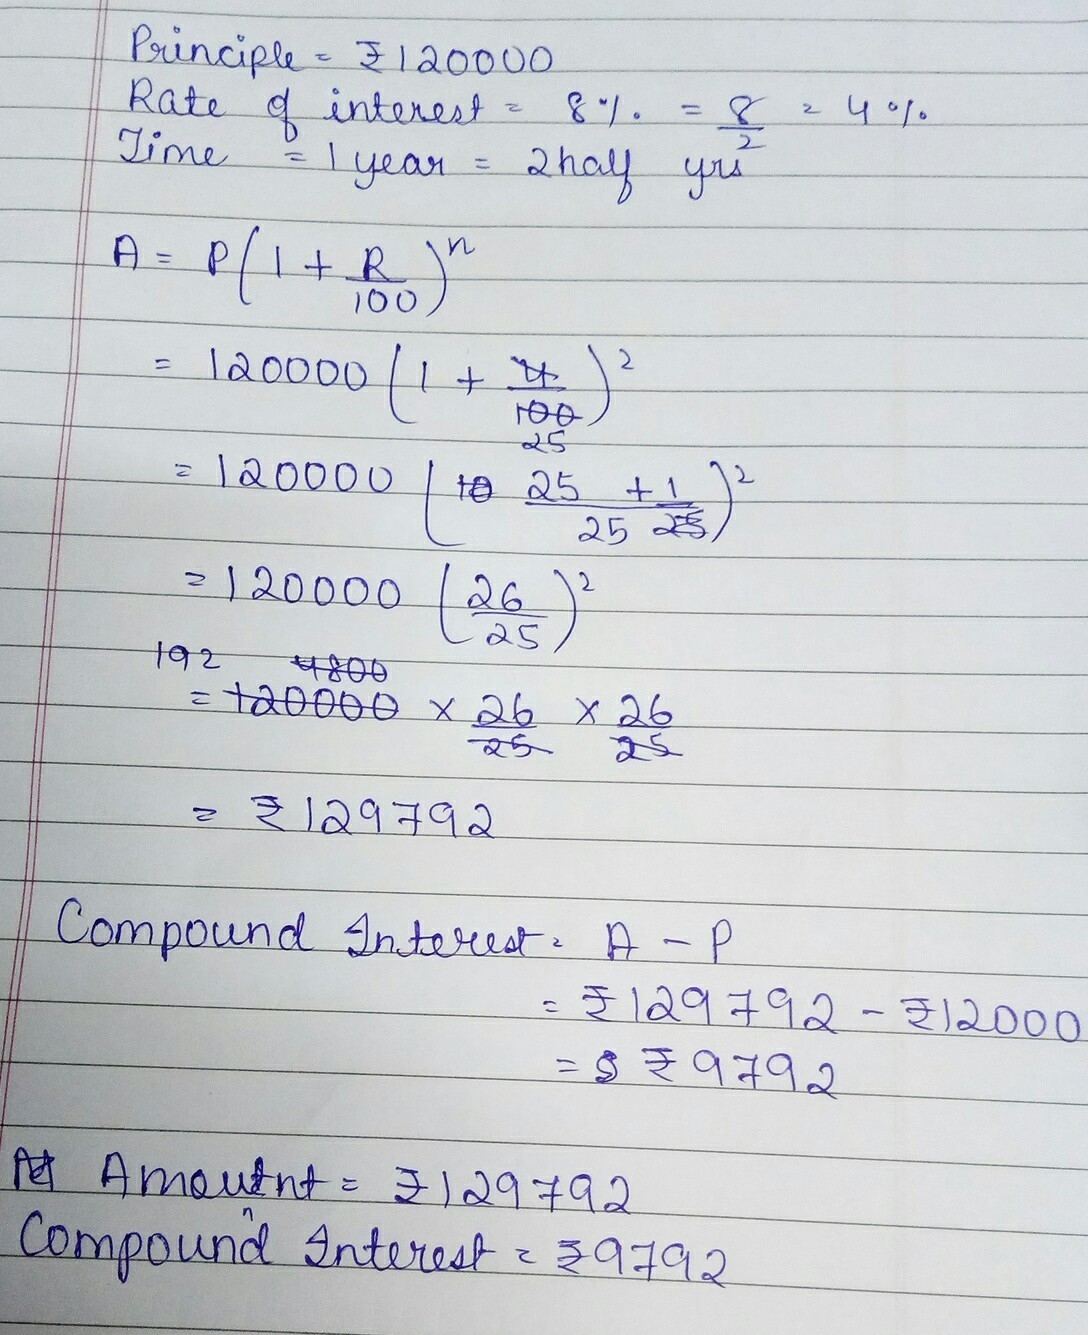 Find The Amount And The Compound Interest On Rs At